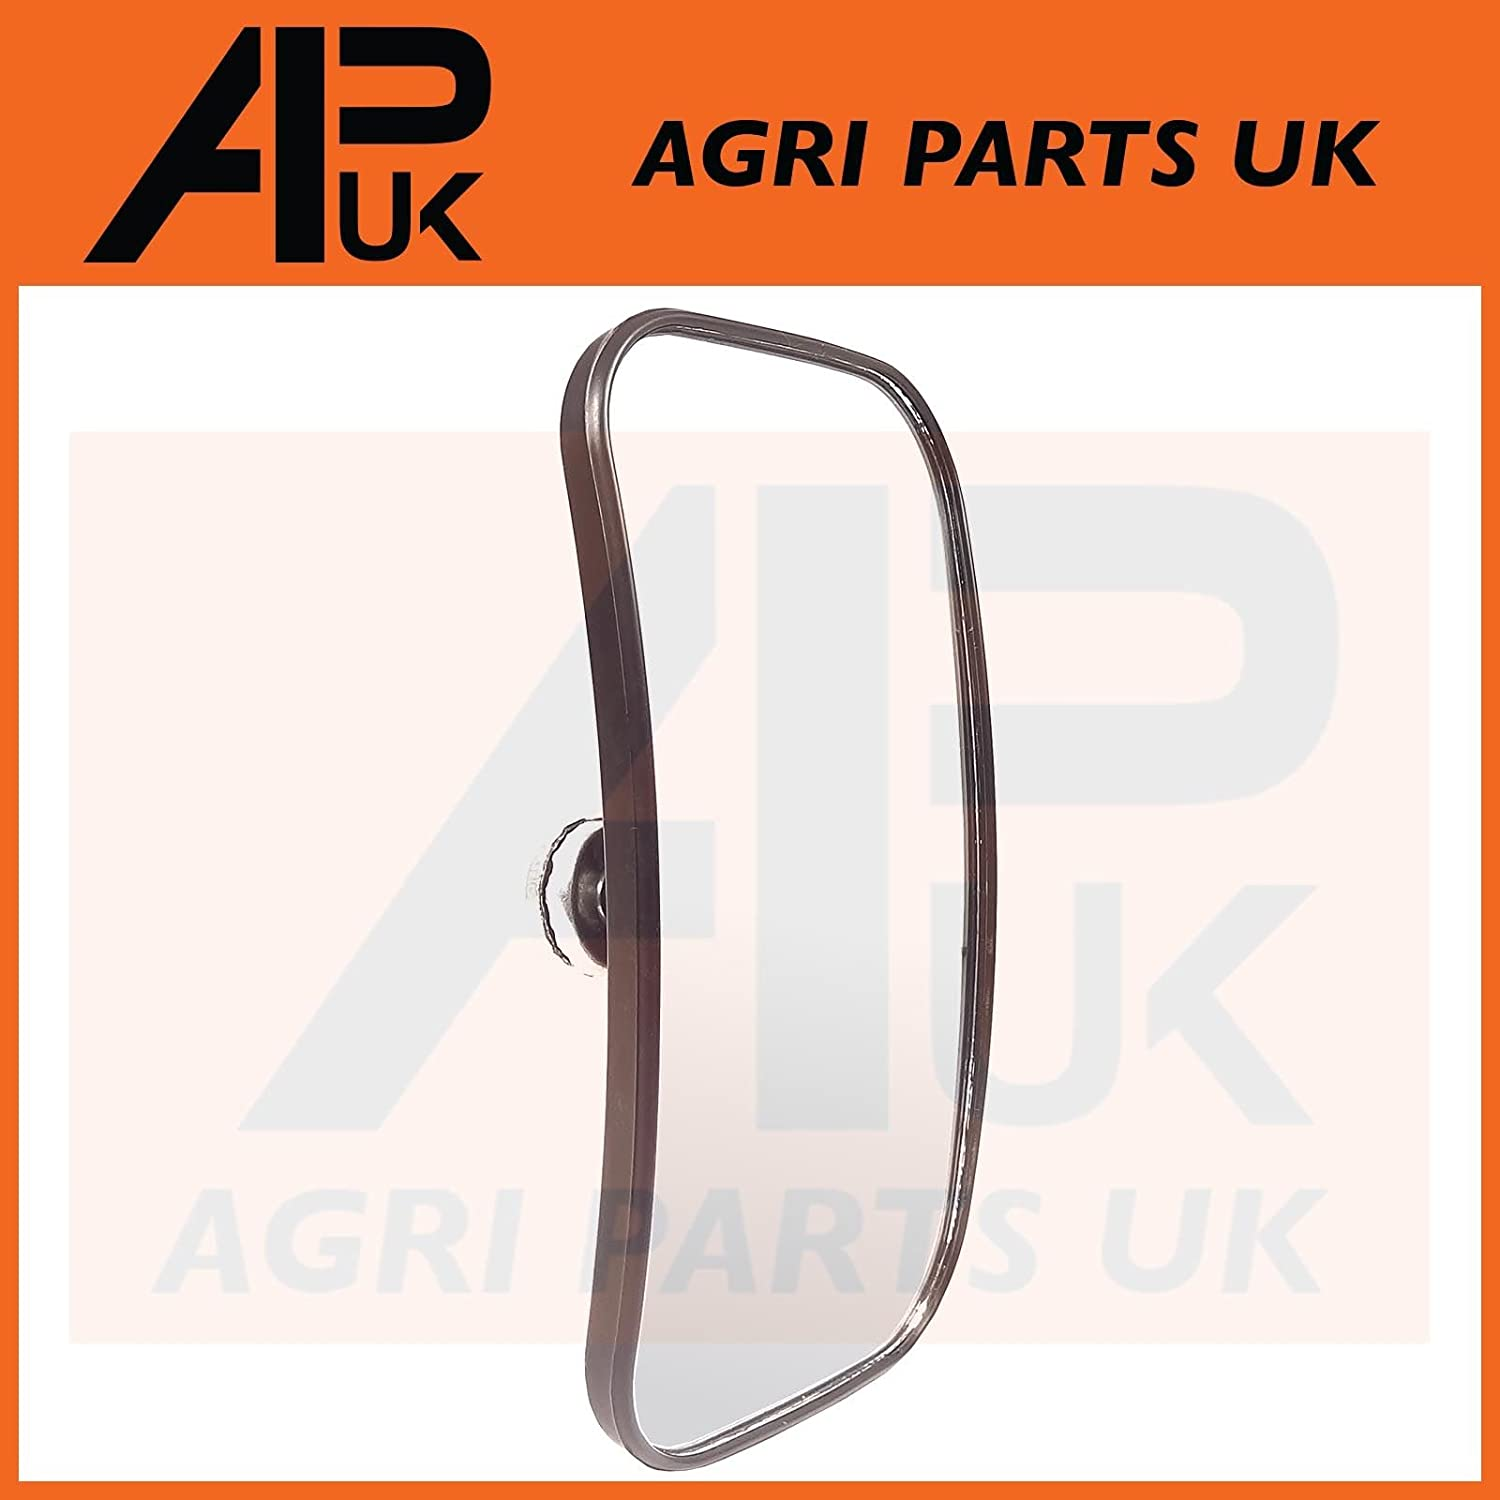 Universal Mirror Head Glass Tractor Lorry Digger Blind Spot JCB Bus Curved